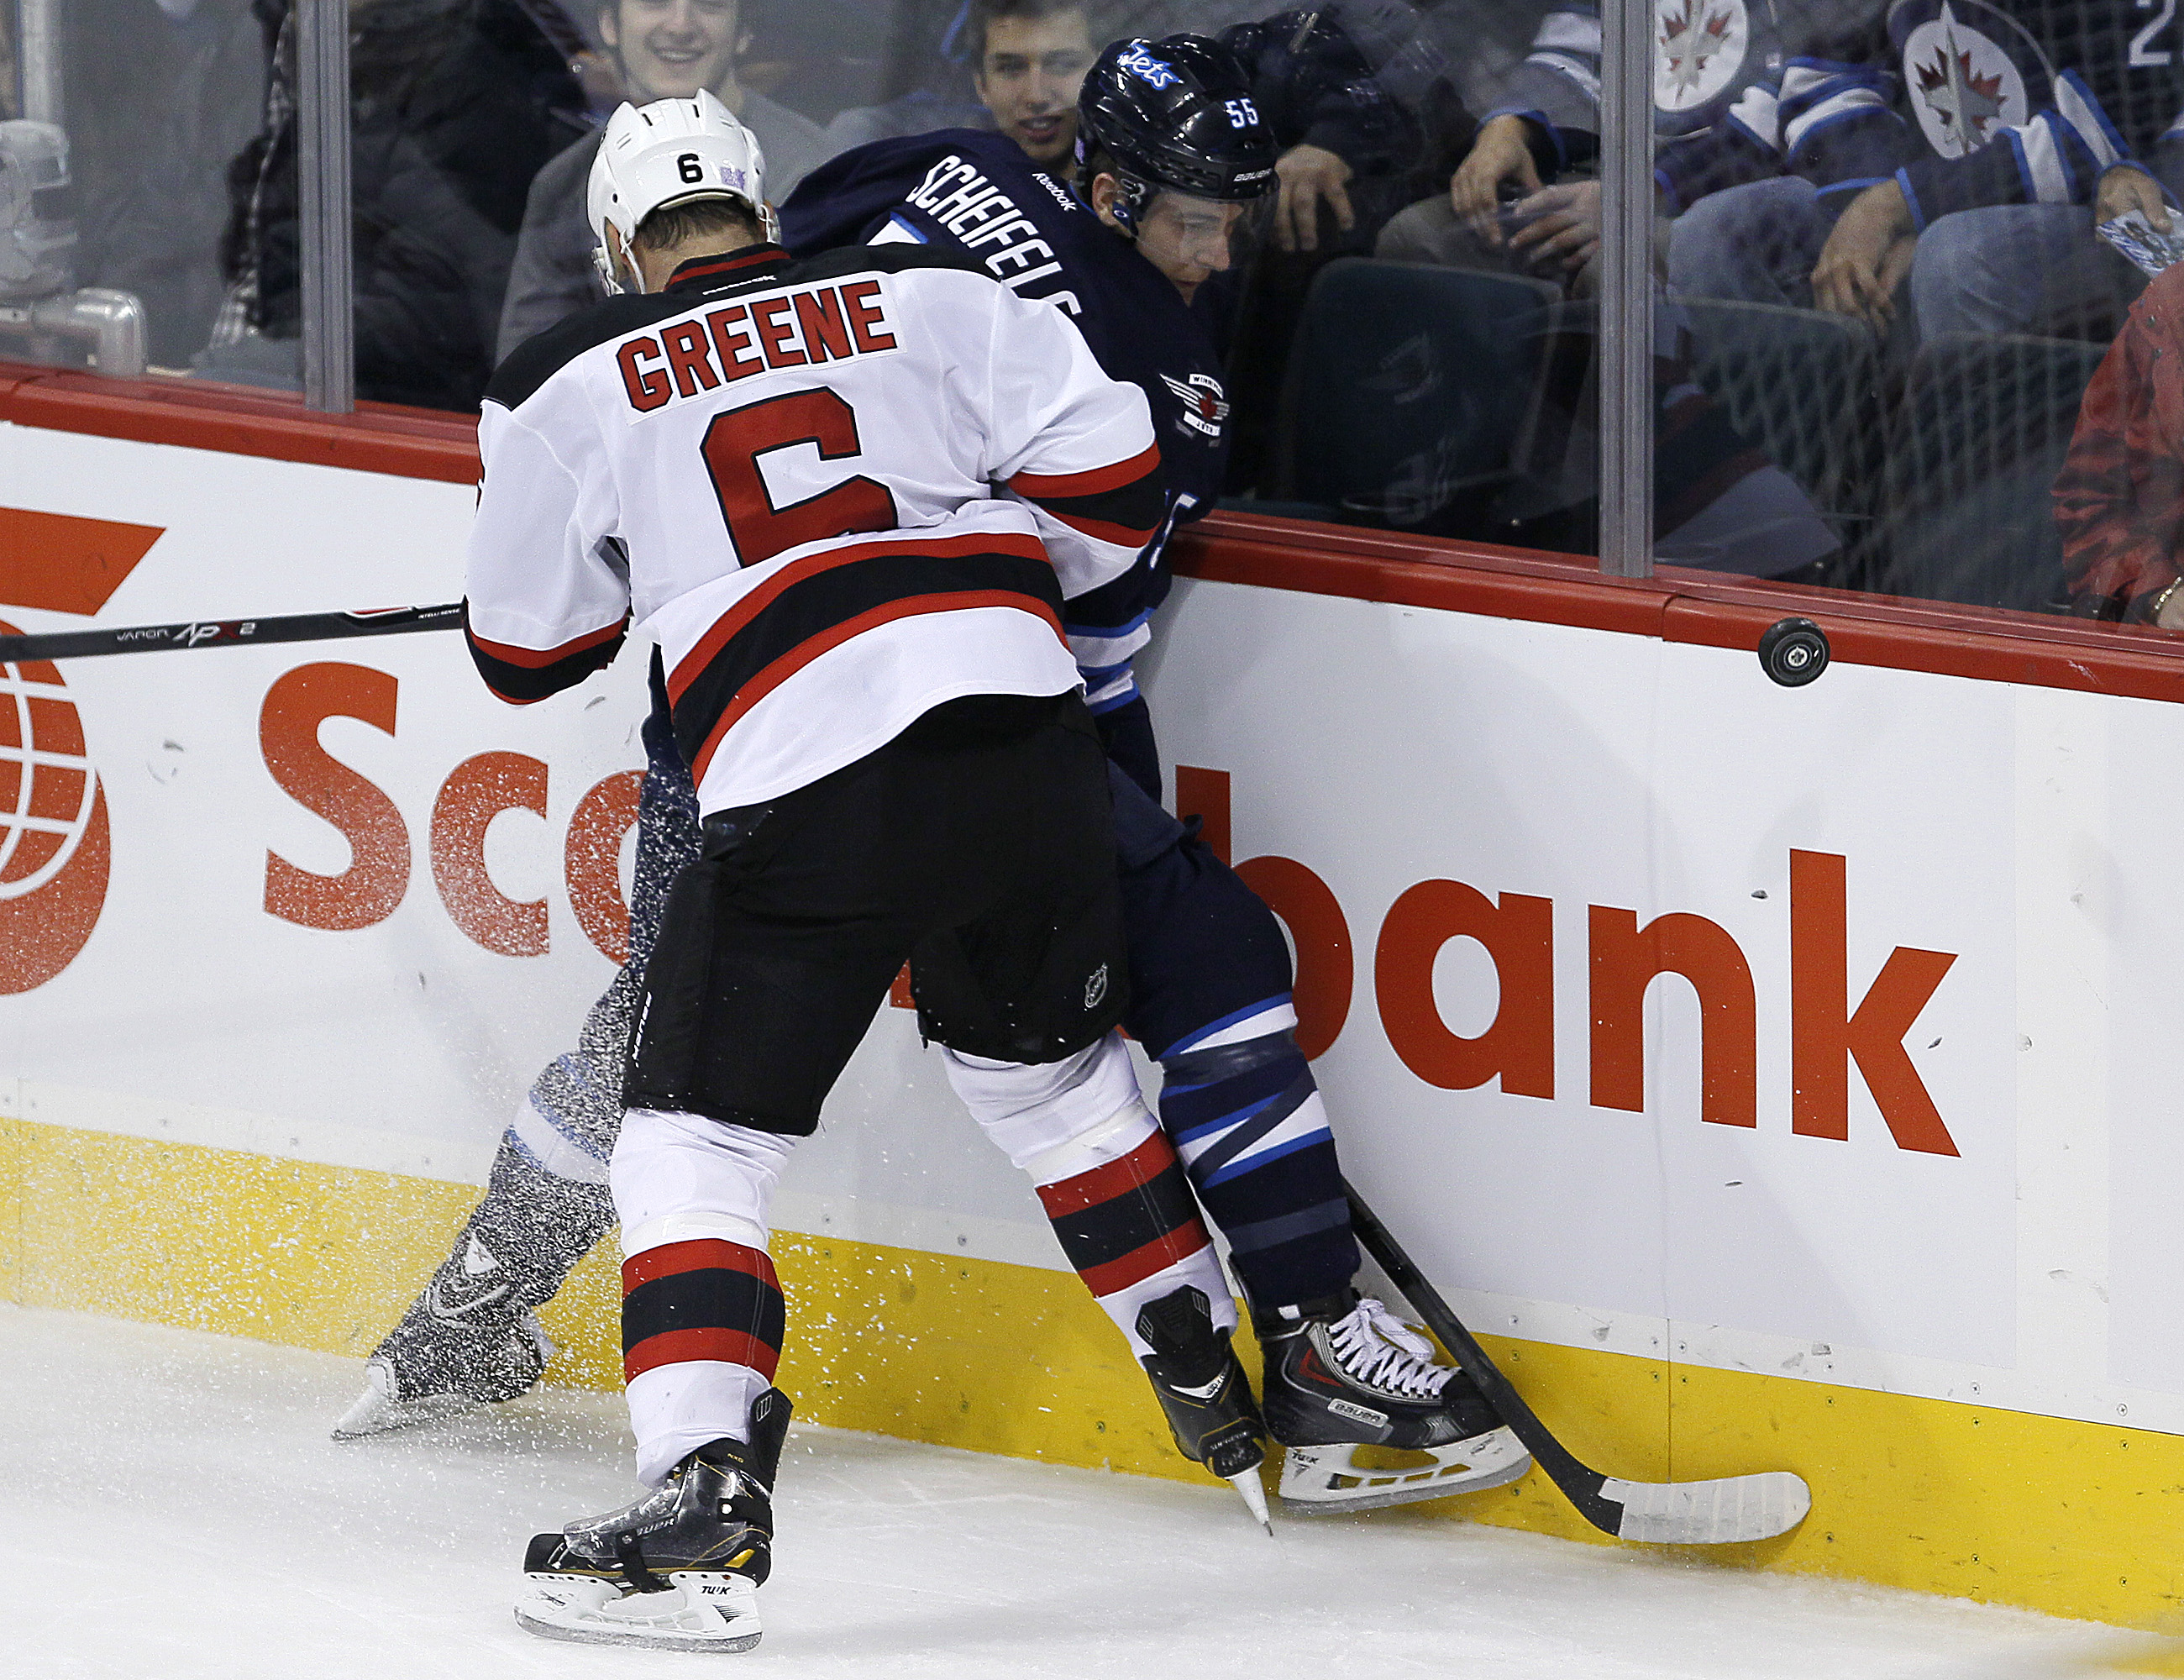 Mark Scheifele gets tied up by Andy Greene during the first period.